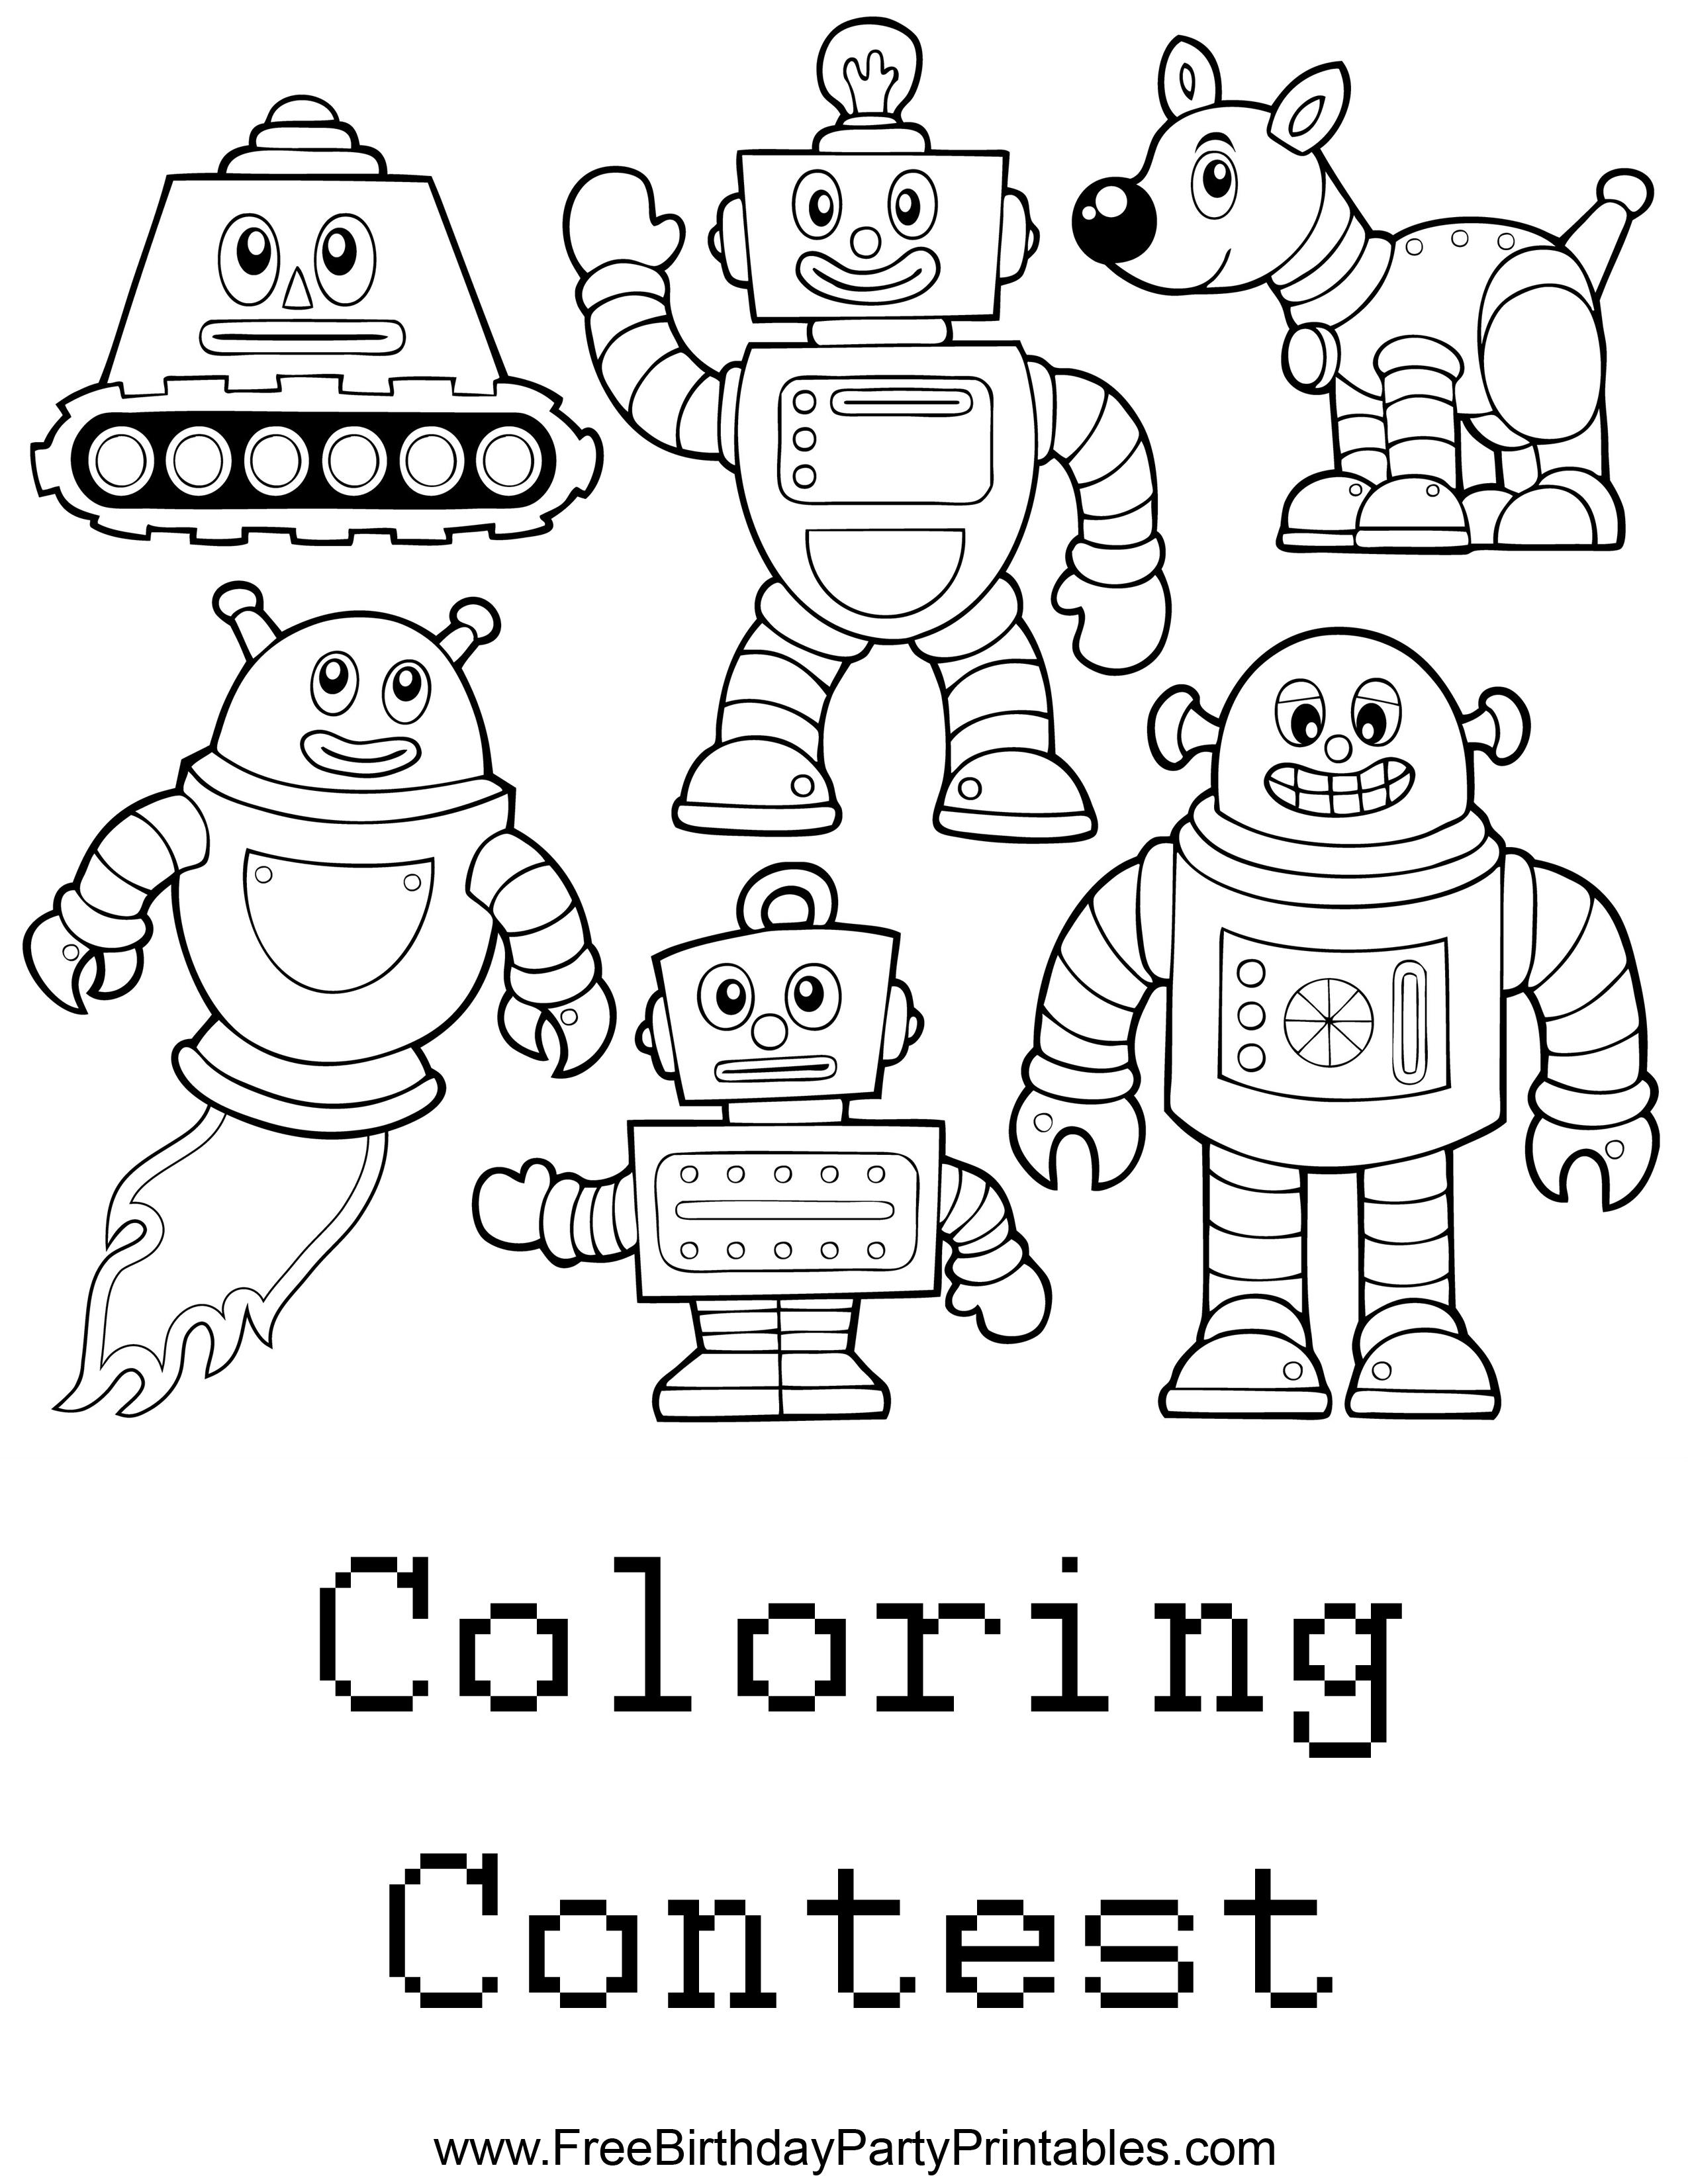 memory drawing of birthday party ; Free%2520Robots%2520Birthday%2520Party%2520Coloring%2520Contest%2520Printable%2520Sheet%2520by%2520Free%2520Birthday%2520Party%2520Printables%2520PNG